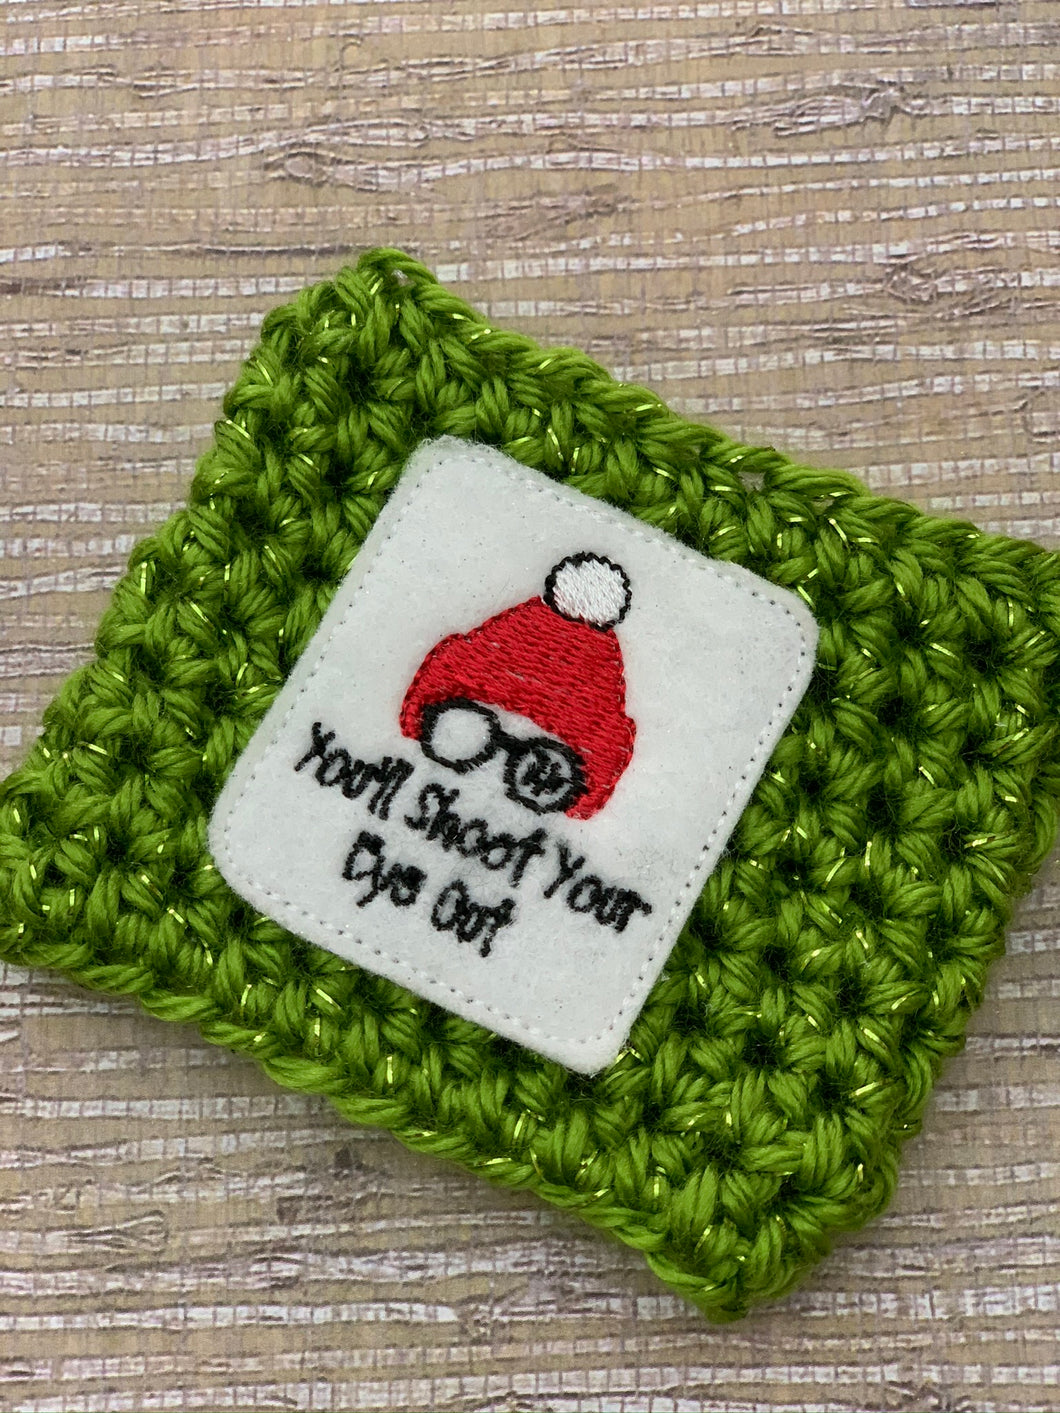 Christmas Story You'll Shoot Your Eye Out on Green Sparkle Reusable Eco Friendly Hot and Cold Beverage Cup Cozy